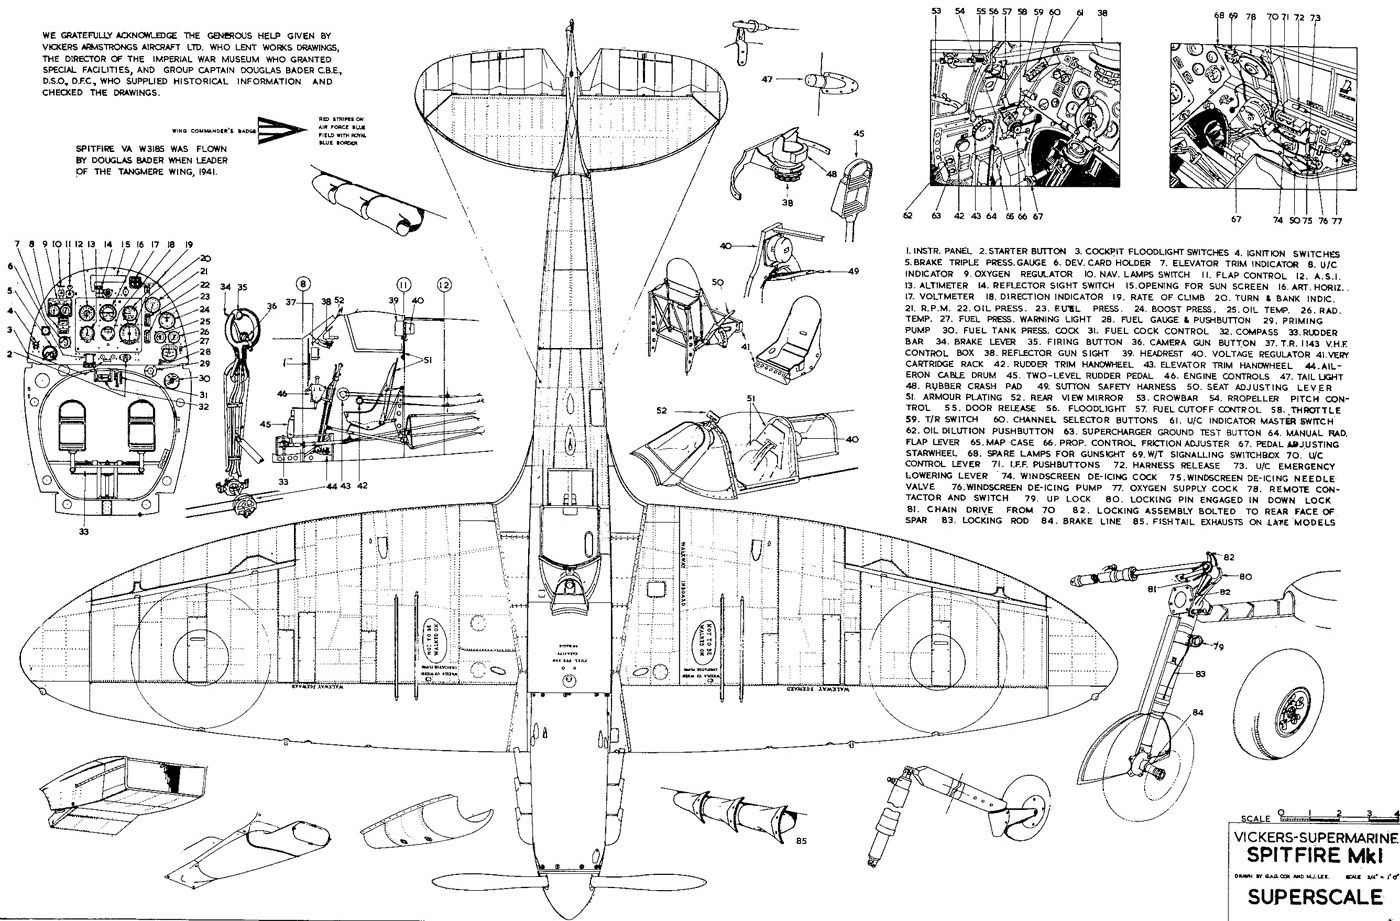 spitfire airplane schematics or drawings